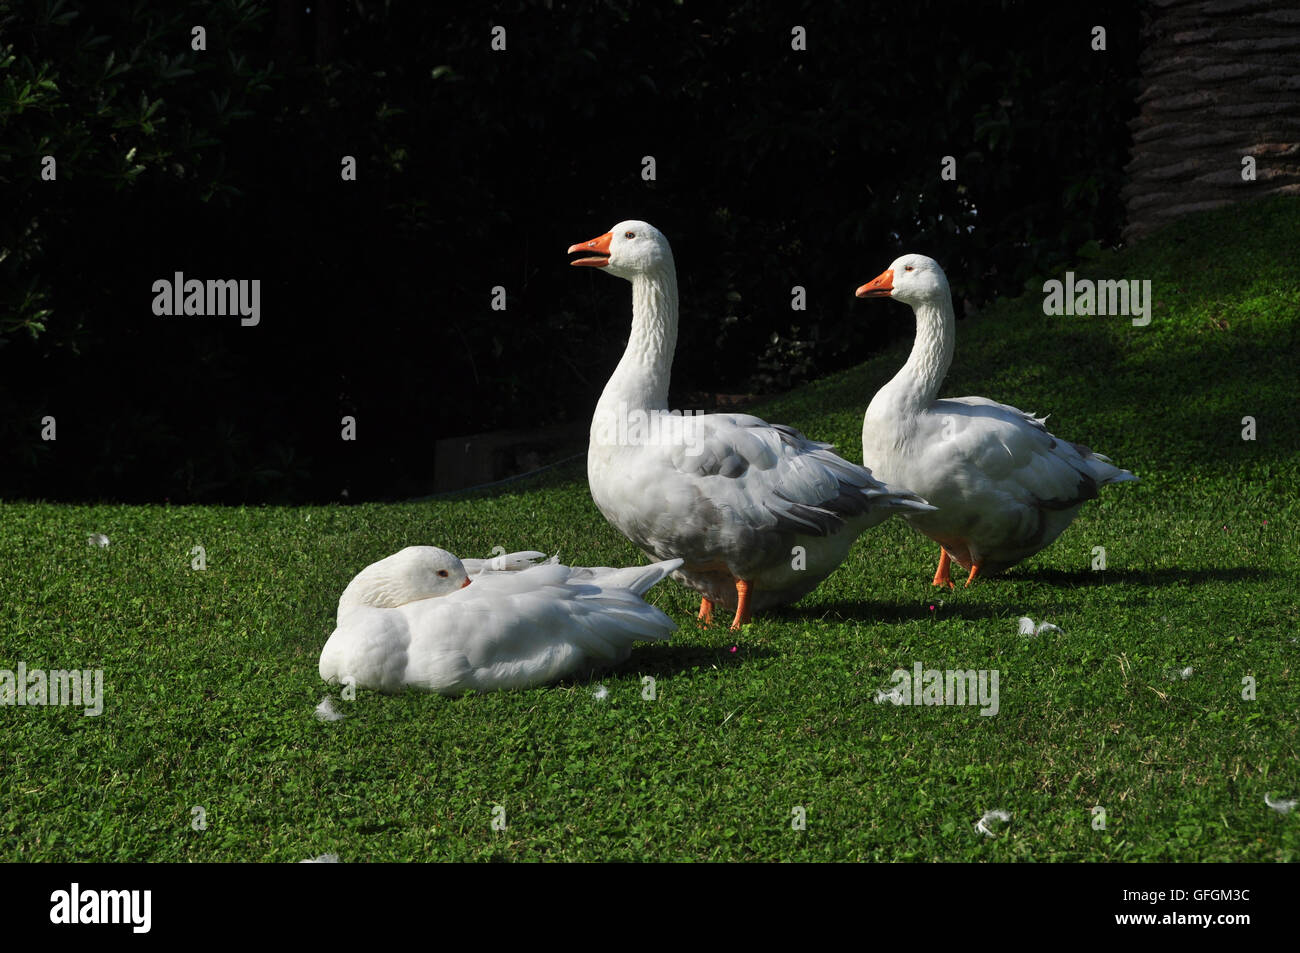 Three happy ducks on grass enjoy the afternoon sunshine. - Stock Image